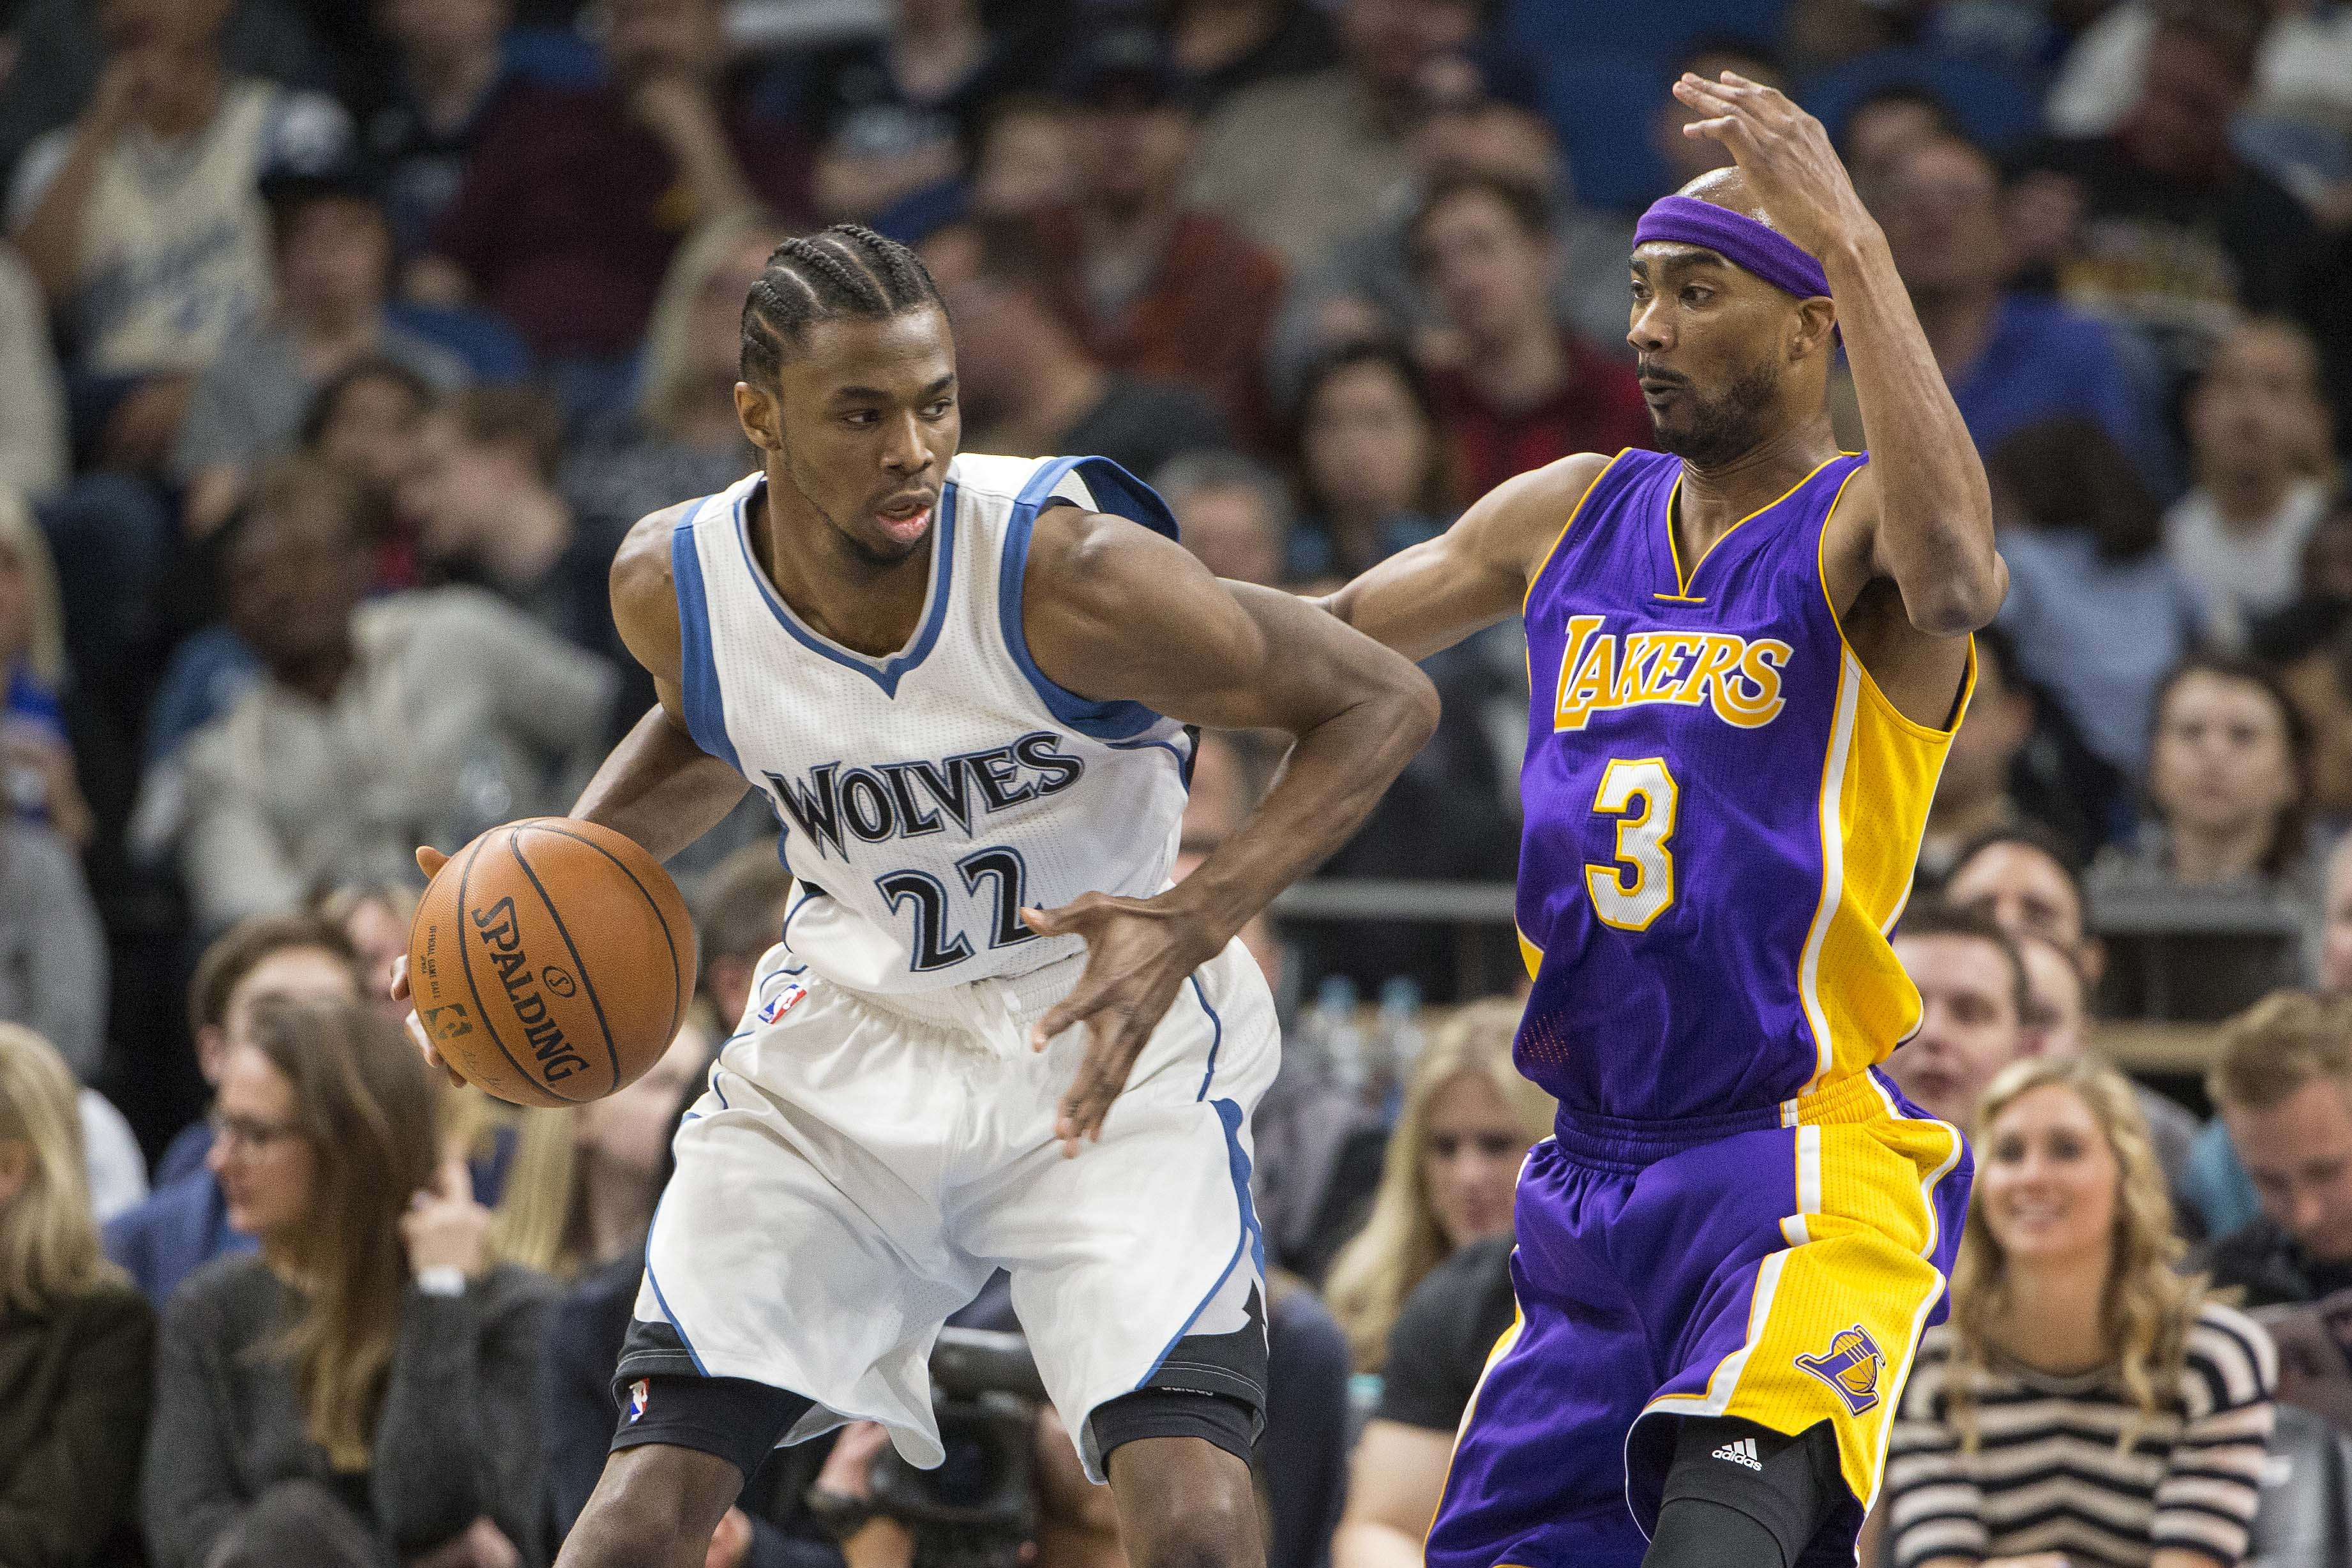 9981872-nba-los-angeles-lakers-at-minnesota-timberwolves